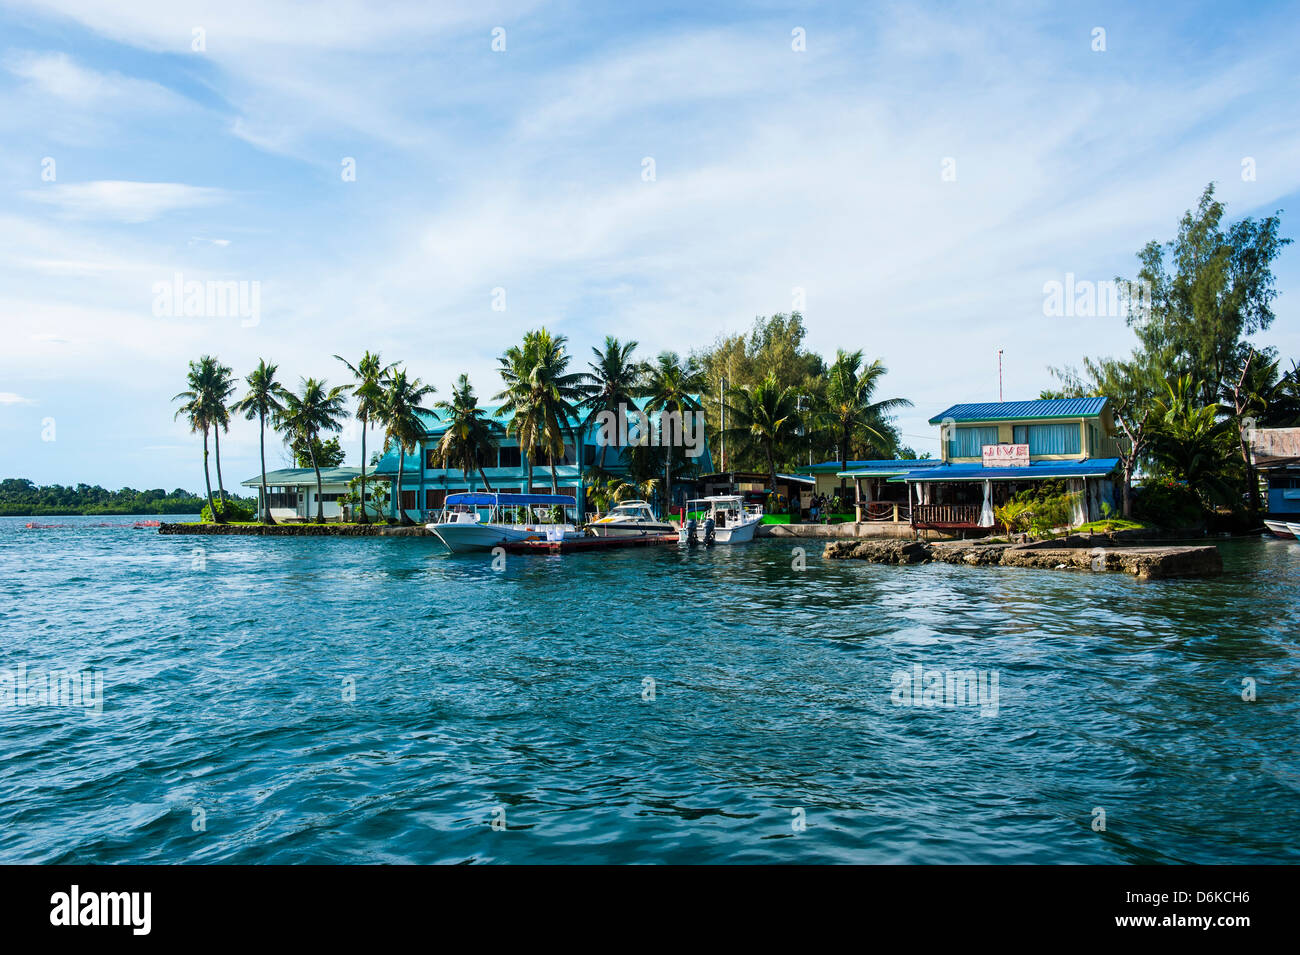 The harbour of Koror, Palau, Central Pacific, Pacific - Stock Image